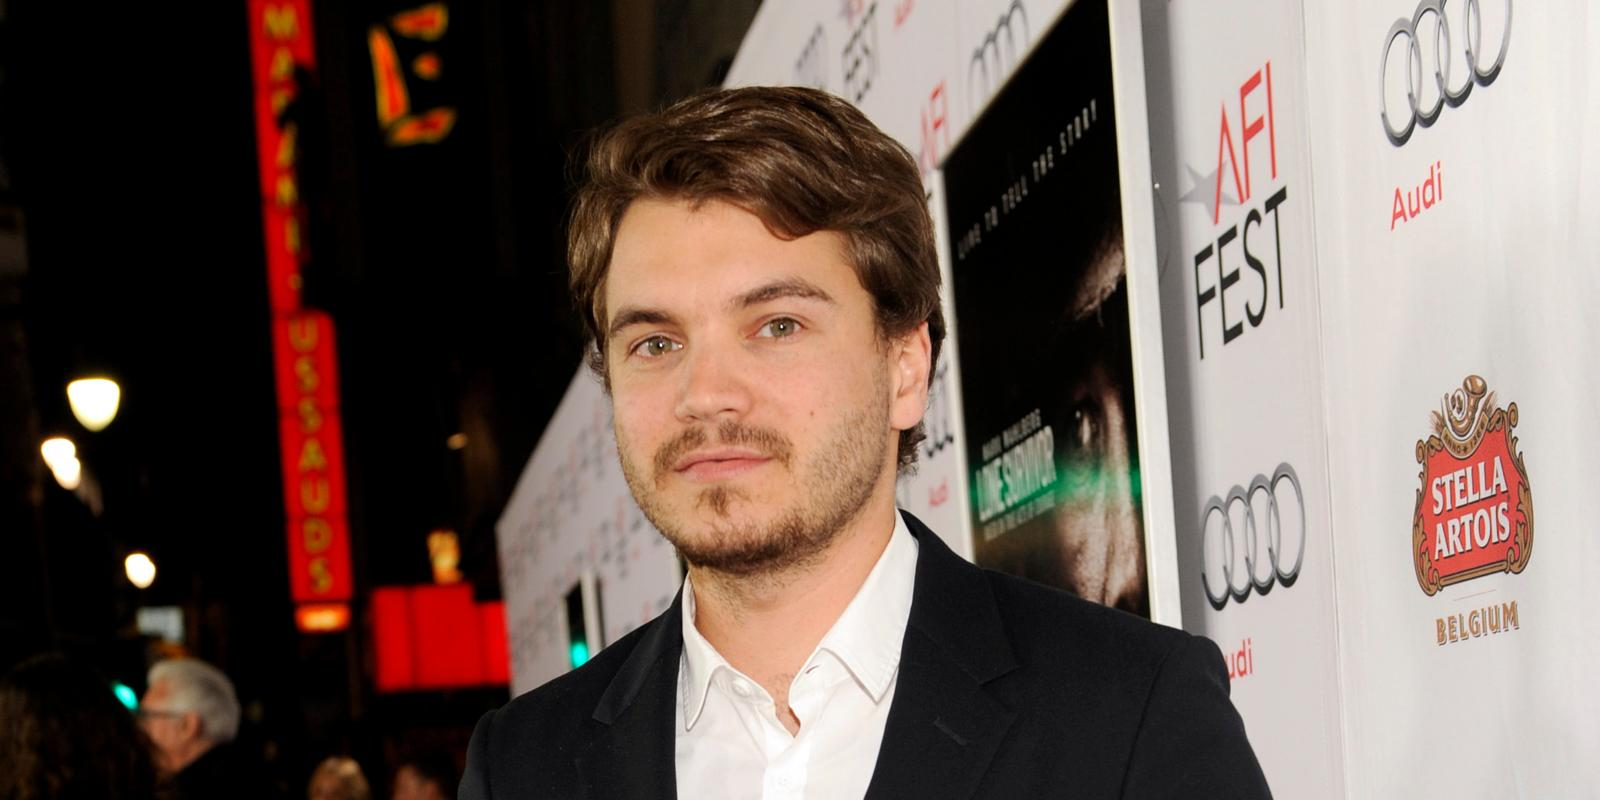 Emile Hirsch on playing John Belushi: \'I will try to do him justice\'